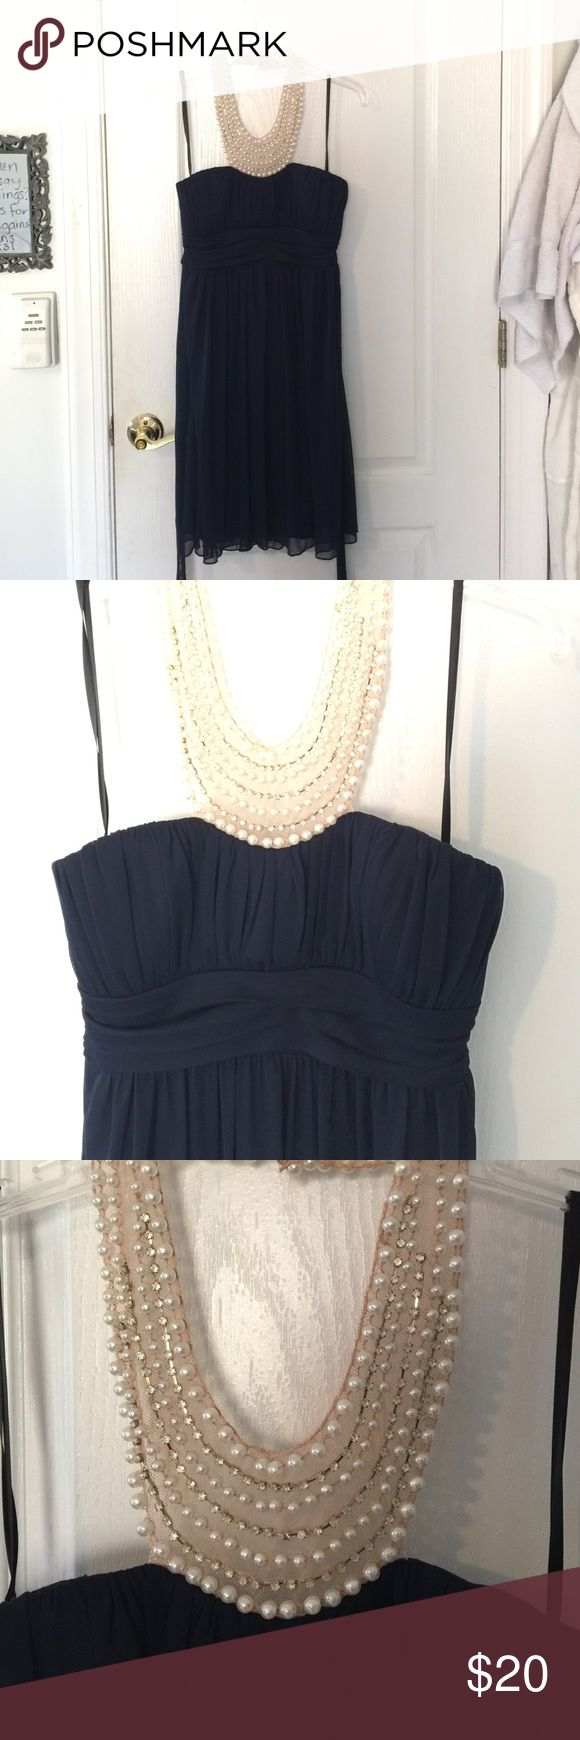 Navy cocktails dress Navy cocktail dress, with sheer beaded neckline. Great for weddings! City Triangles Dresses